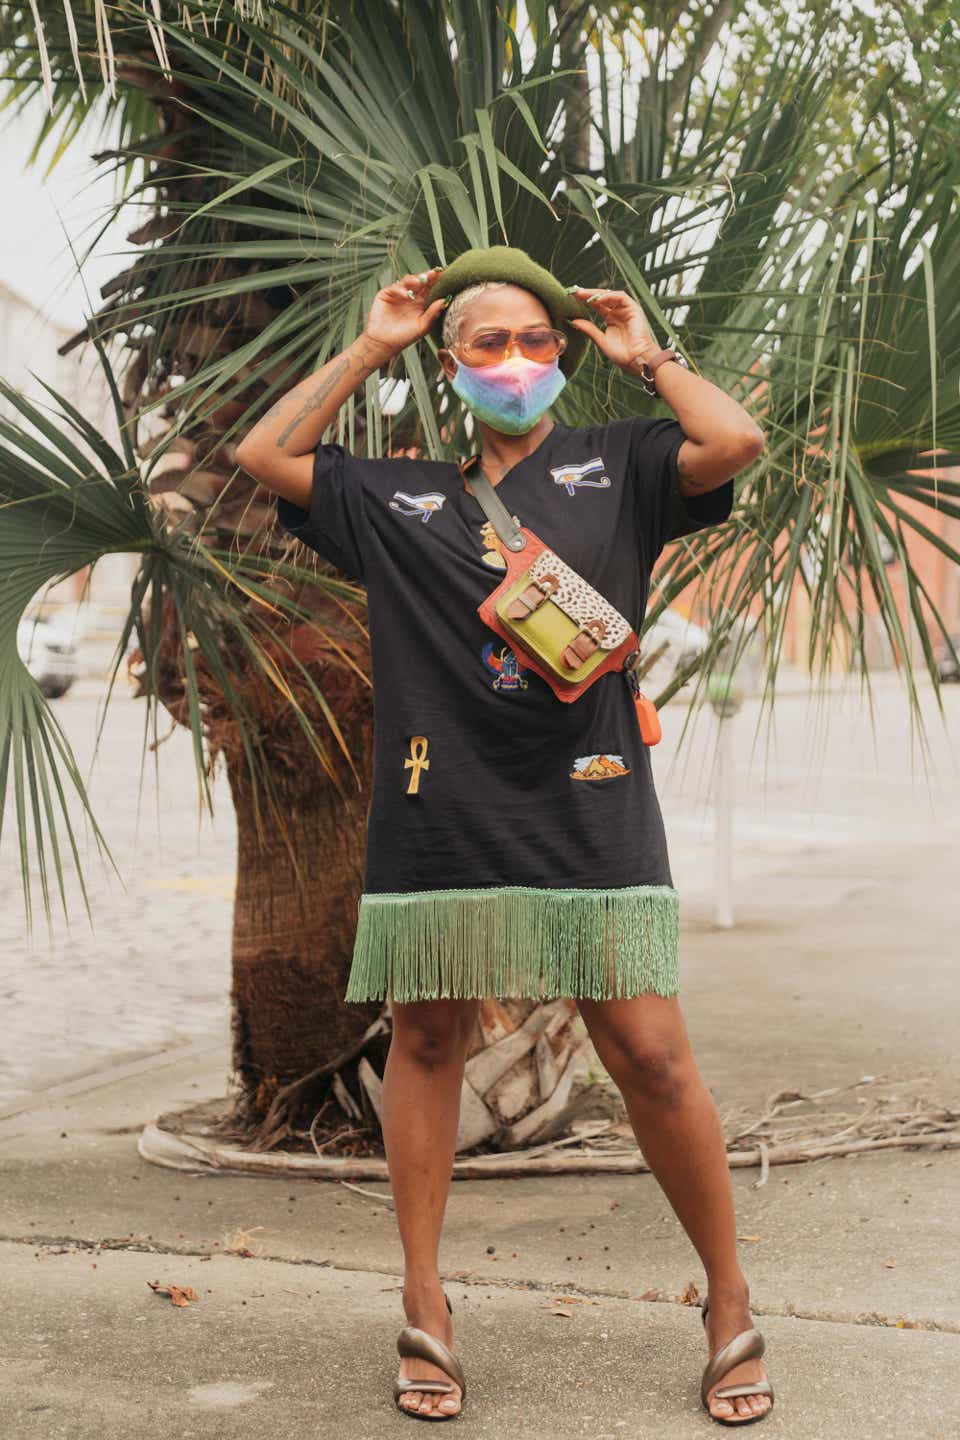 Destine is wearing an army green beret with orange tinted sunglasses and a rainbow tie-dye mask. She has on a black T-shirt dress with green fringe on the bottom. Her shoes are metallic and artfully shaped sandals.